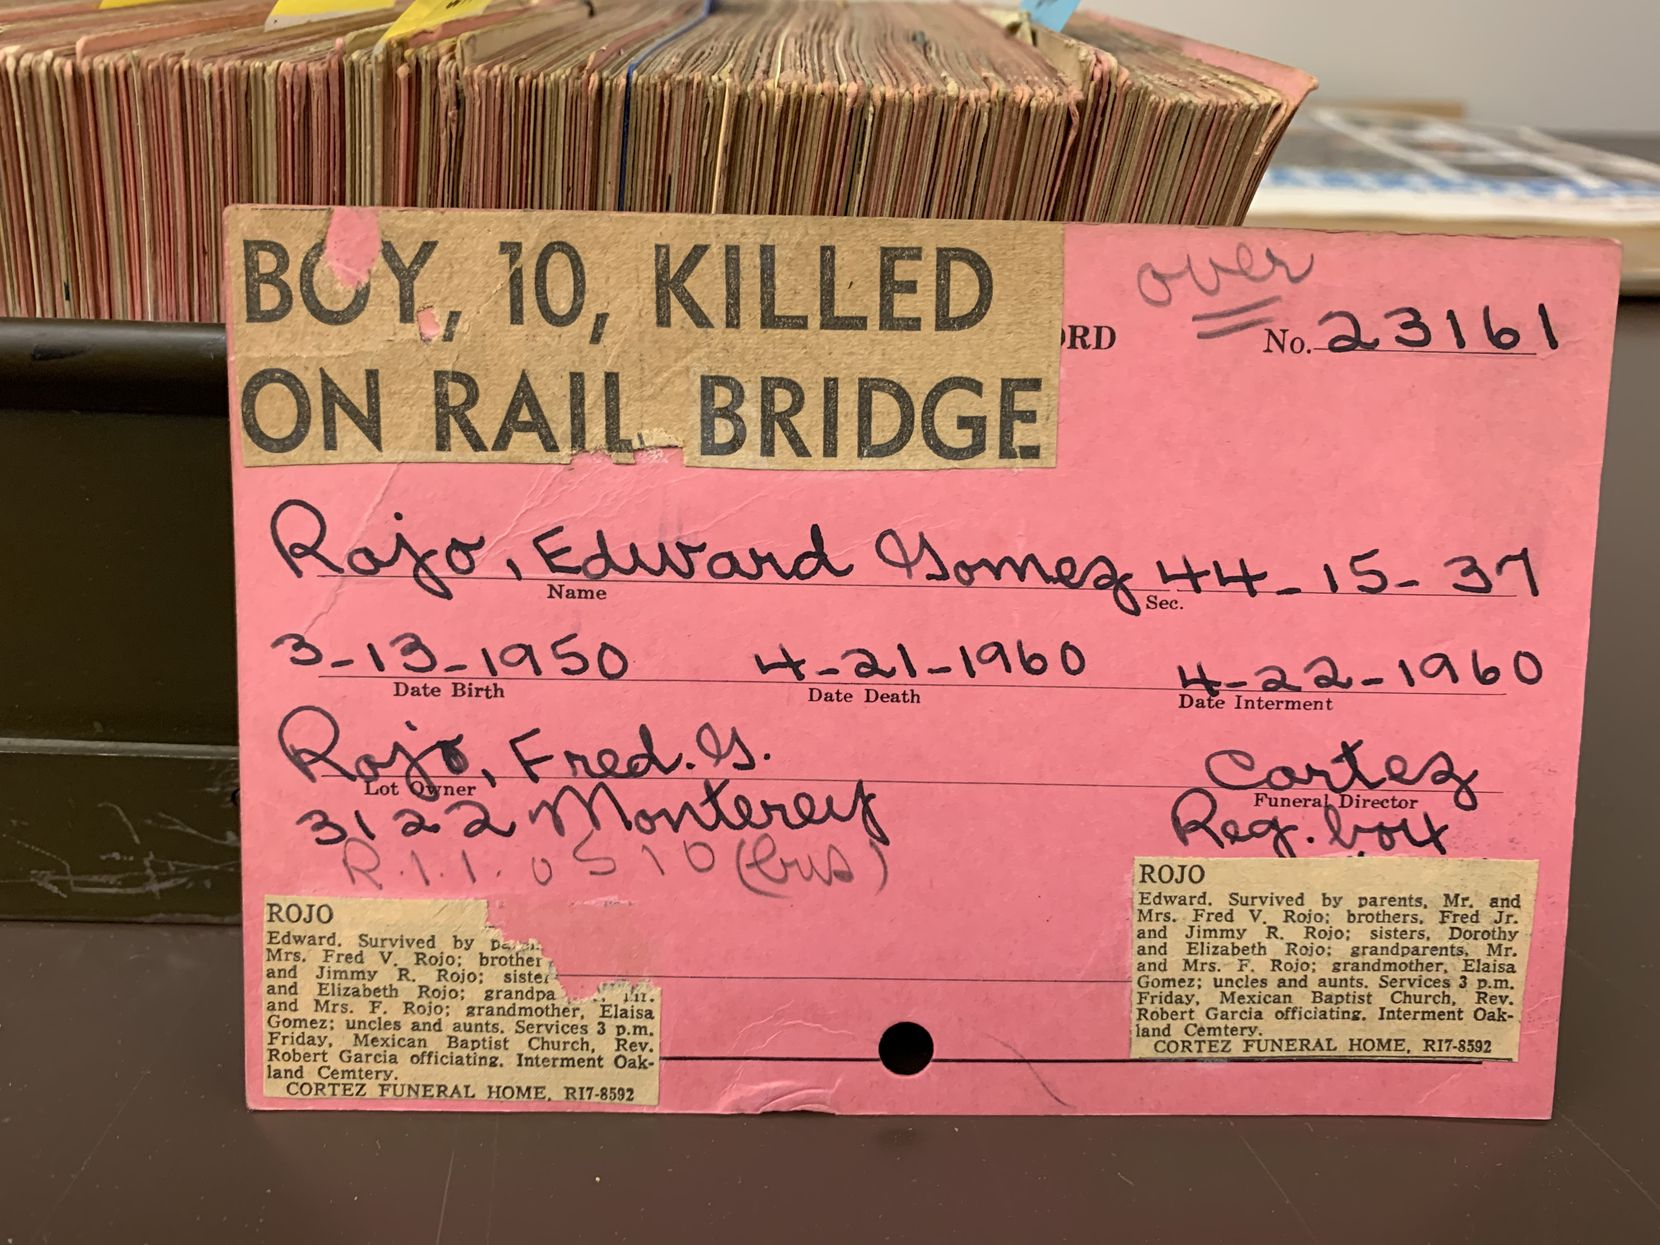 One of the almost 36,000 interment cards in the Oakland Cemetery collection now being stored at the downtown Dallas central library